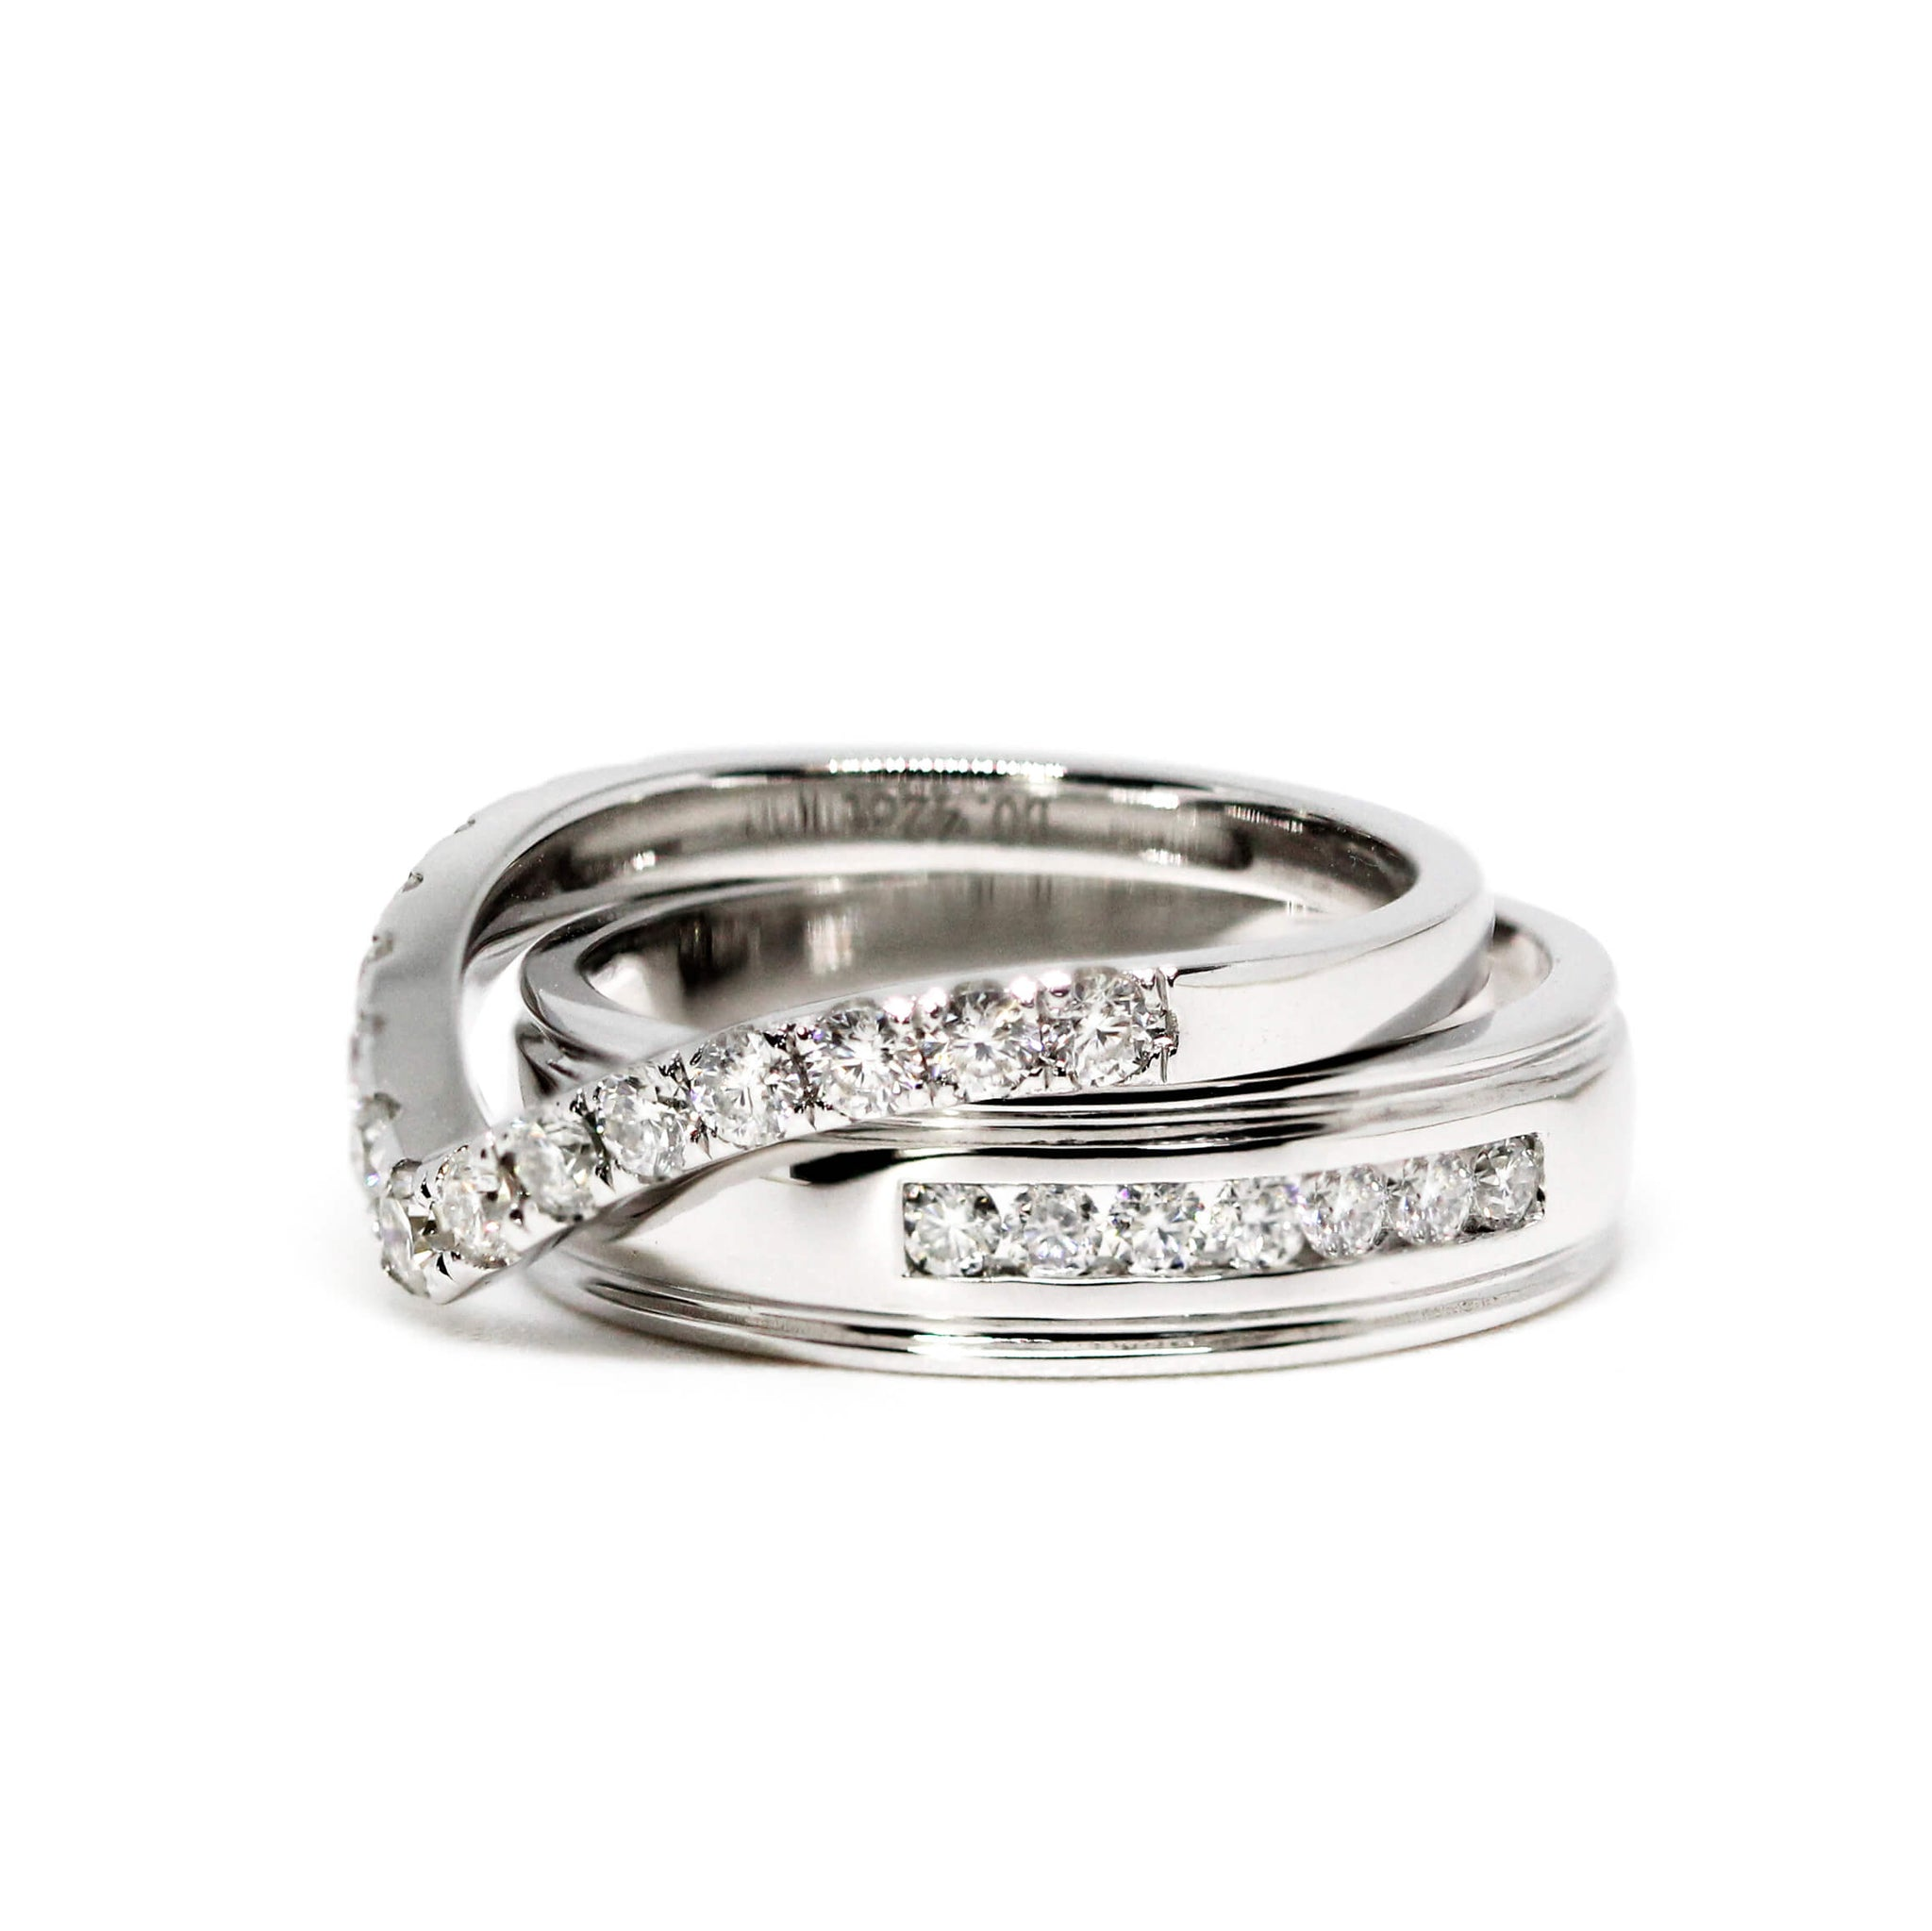 Nisnas 18K White Gold Matching Stacking Wedding Rings in V Shape and Channel Set Men's Ring